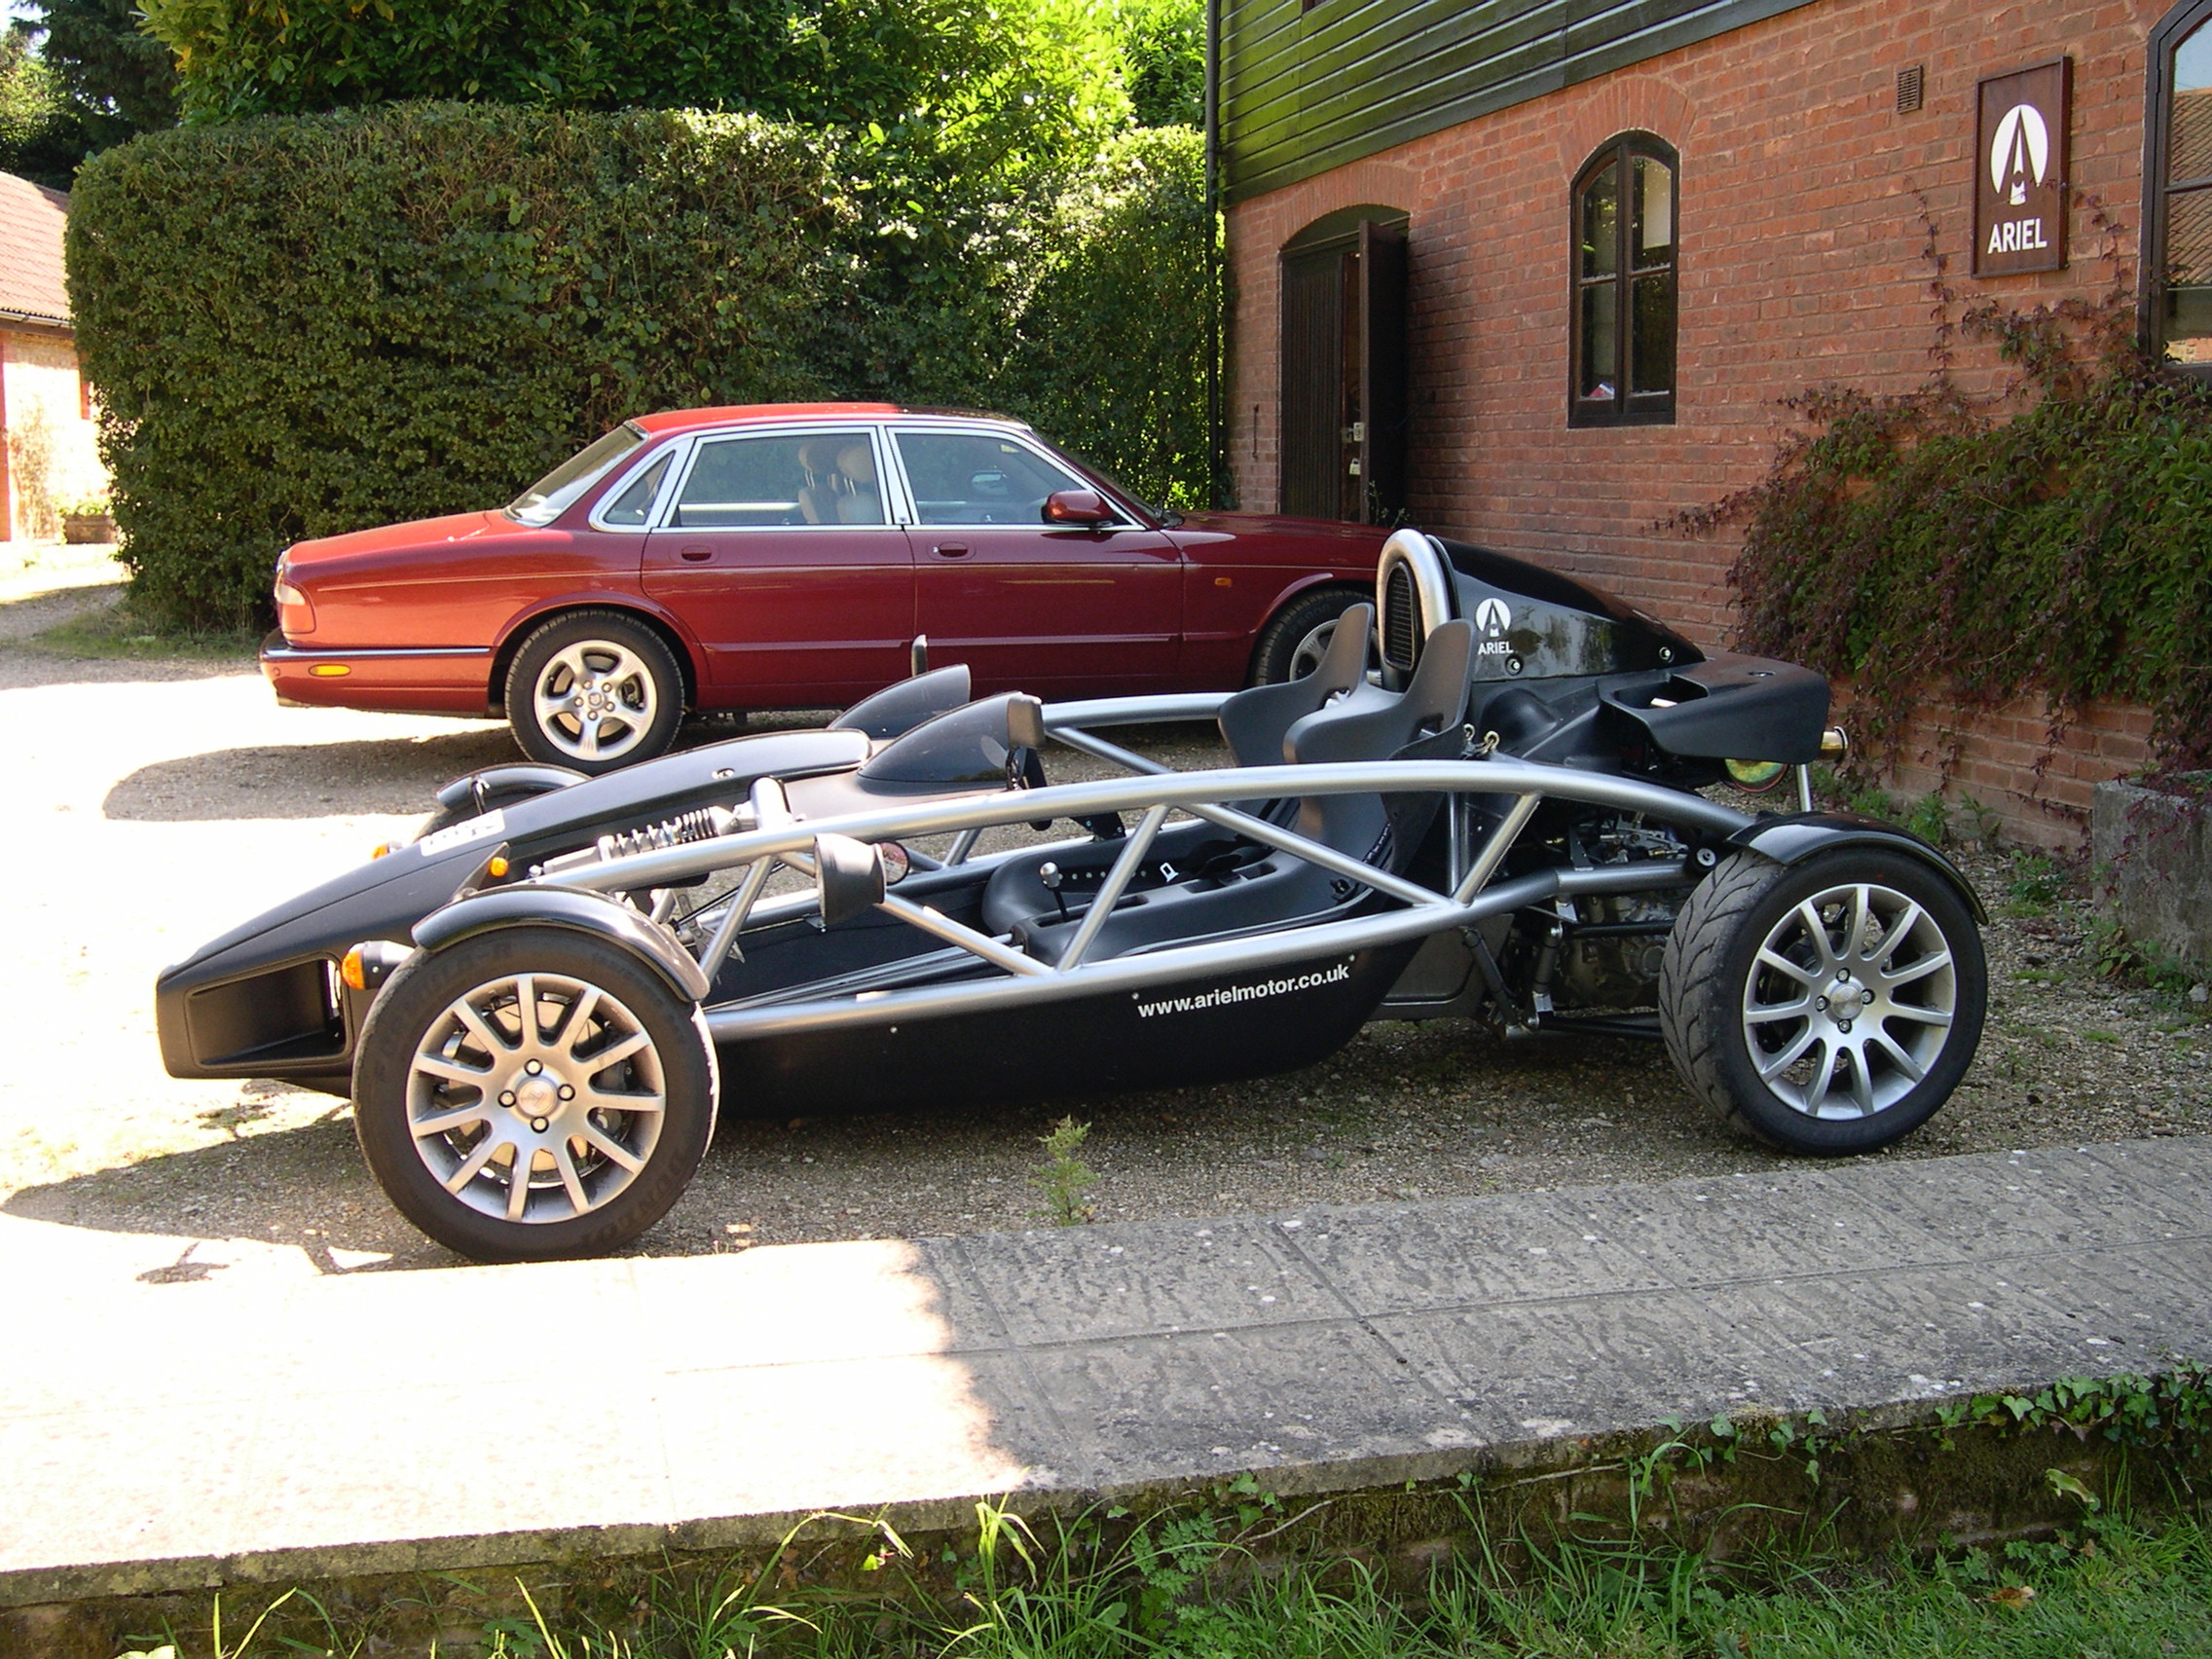 A black Ariel Atom stood in front of a red Jaguar XJ8